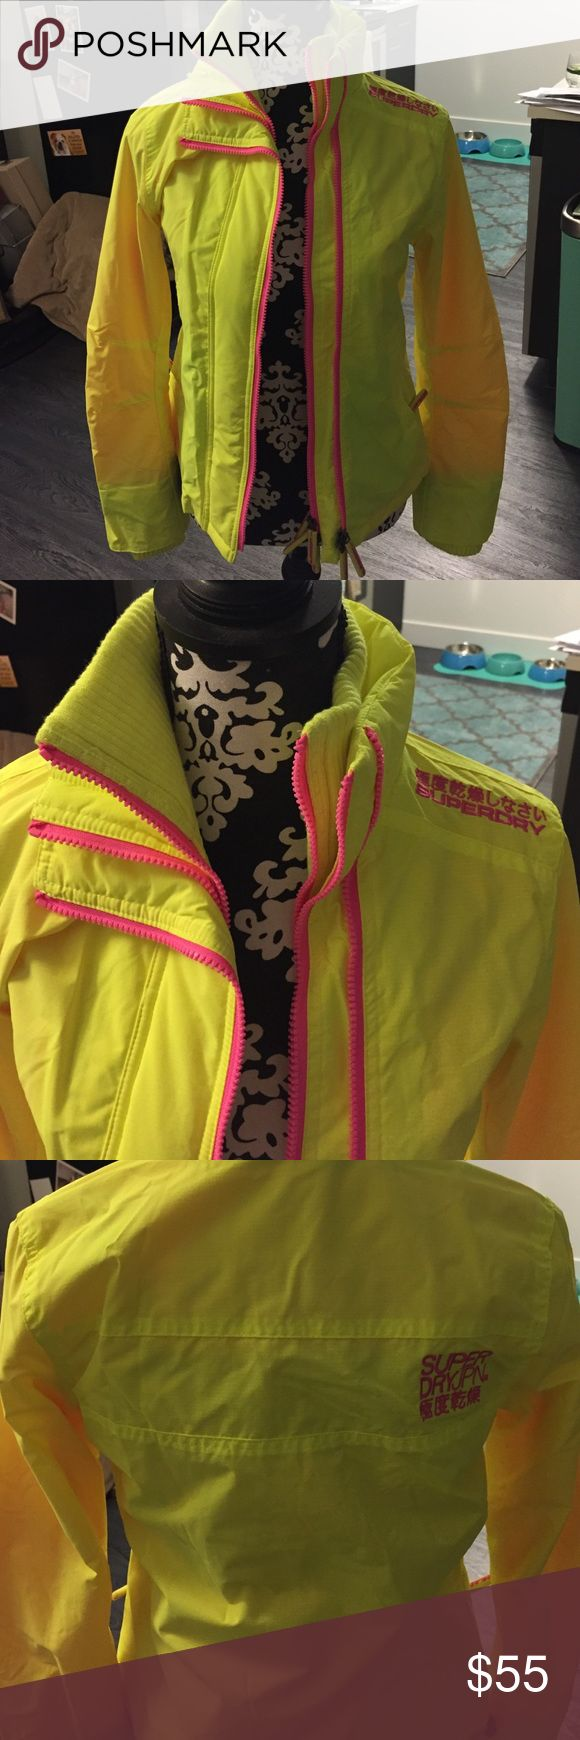 Superdry jacket New! Hot pink and hot yellow Superdry Jackets & Coats